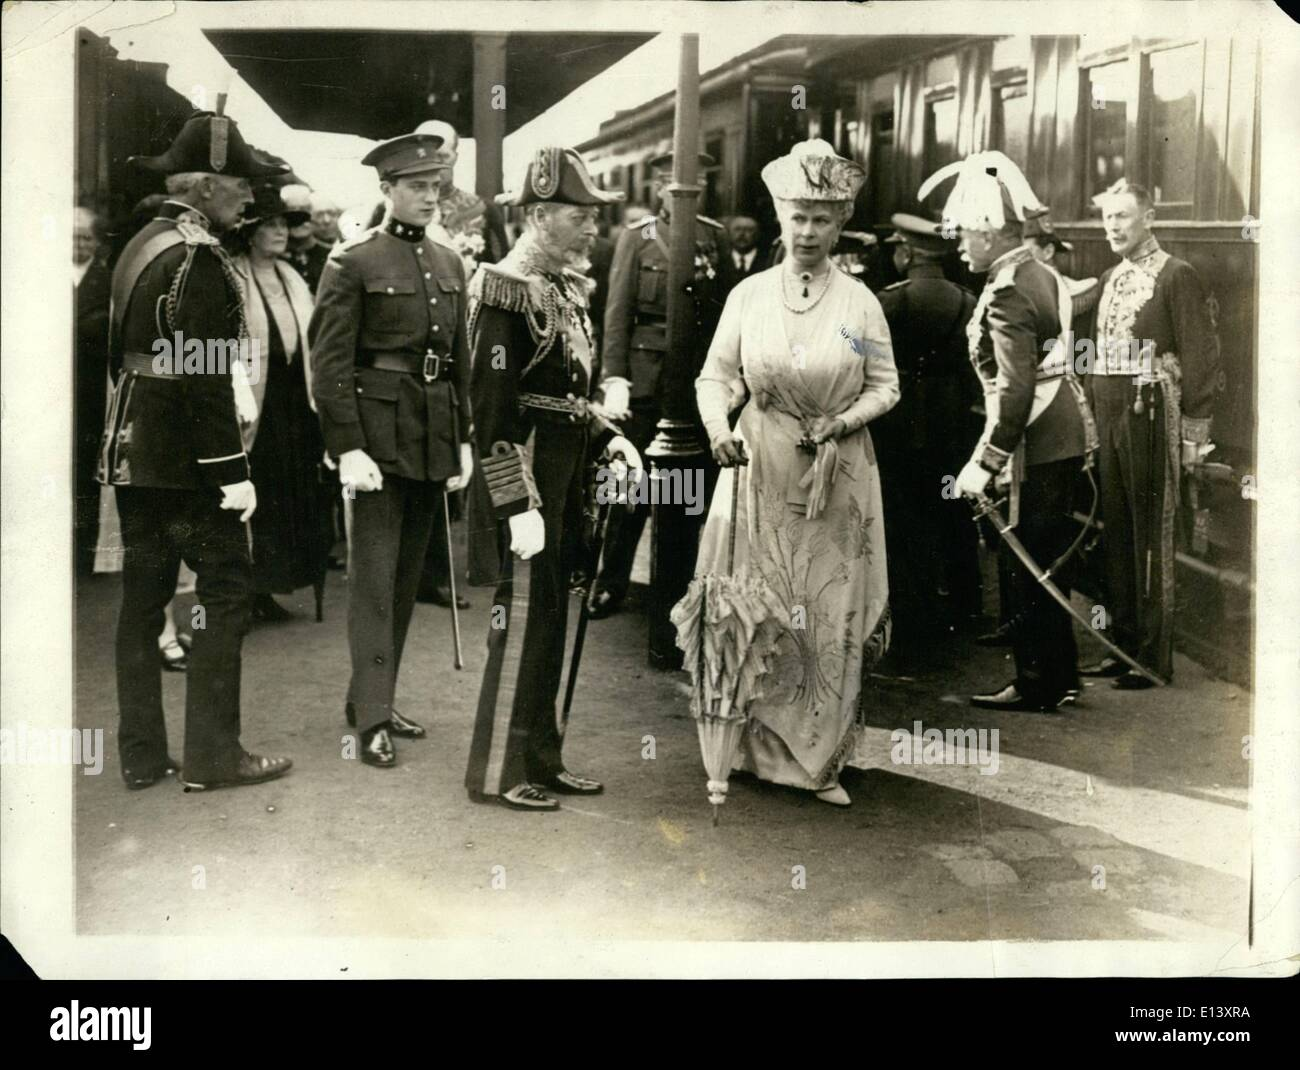 Mar. 27, 2012 - English Rulers visit Belgium: King George and Queen Mary arriving at Brussels. They were met by the Duke of Brabant of Belgium ( left ) at the train. - Stock Image